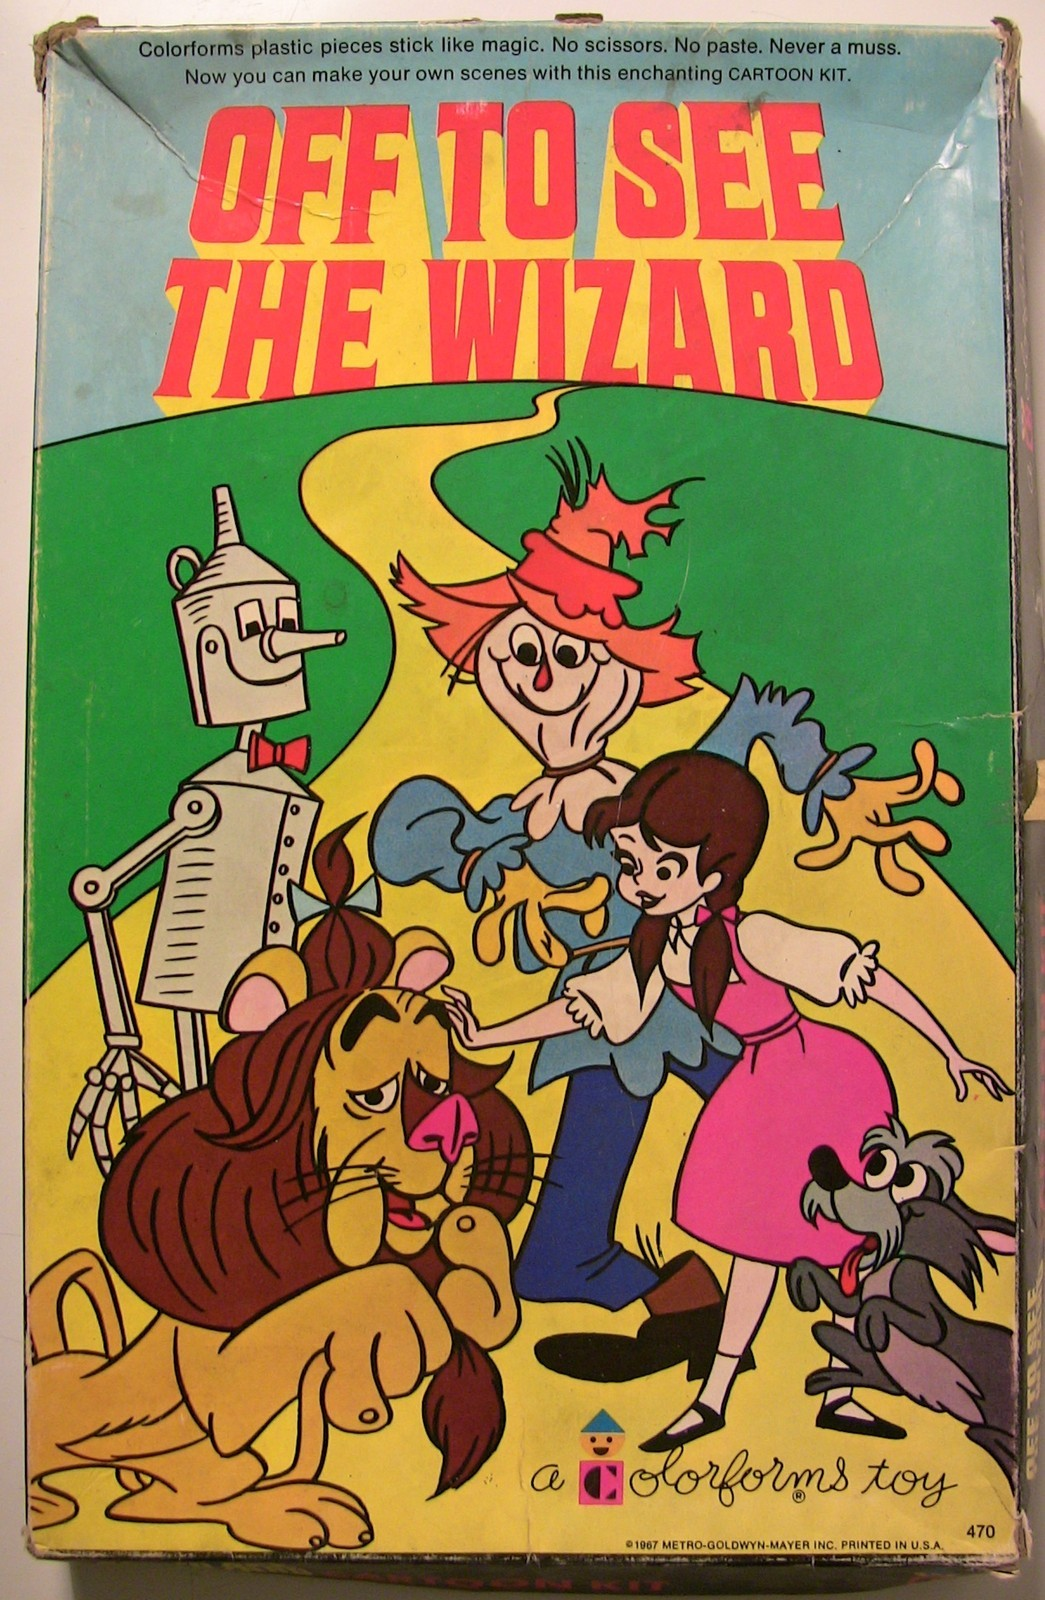 Rareozbooks Gt Games Amp Puzzles Gt Off To See The Wizard Of